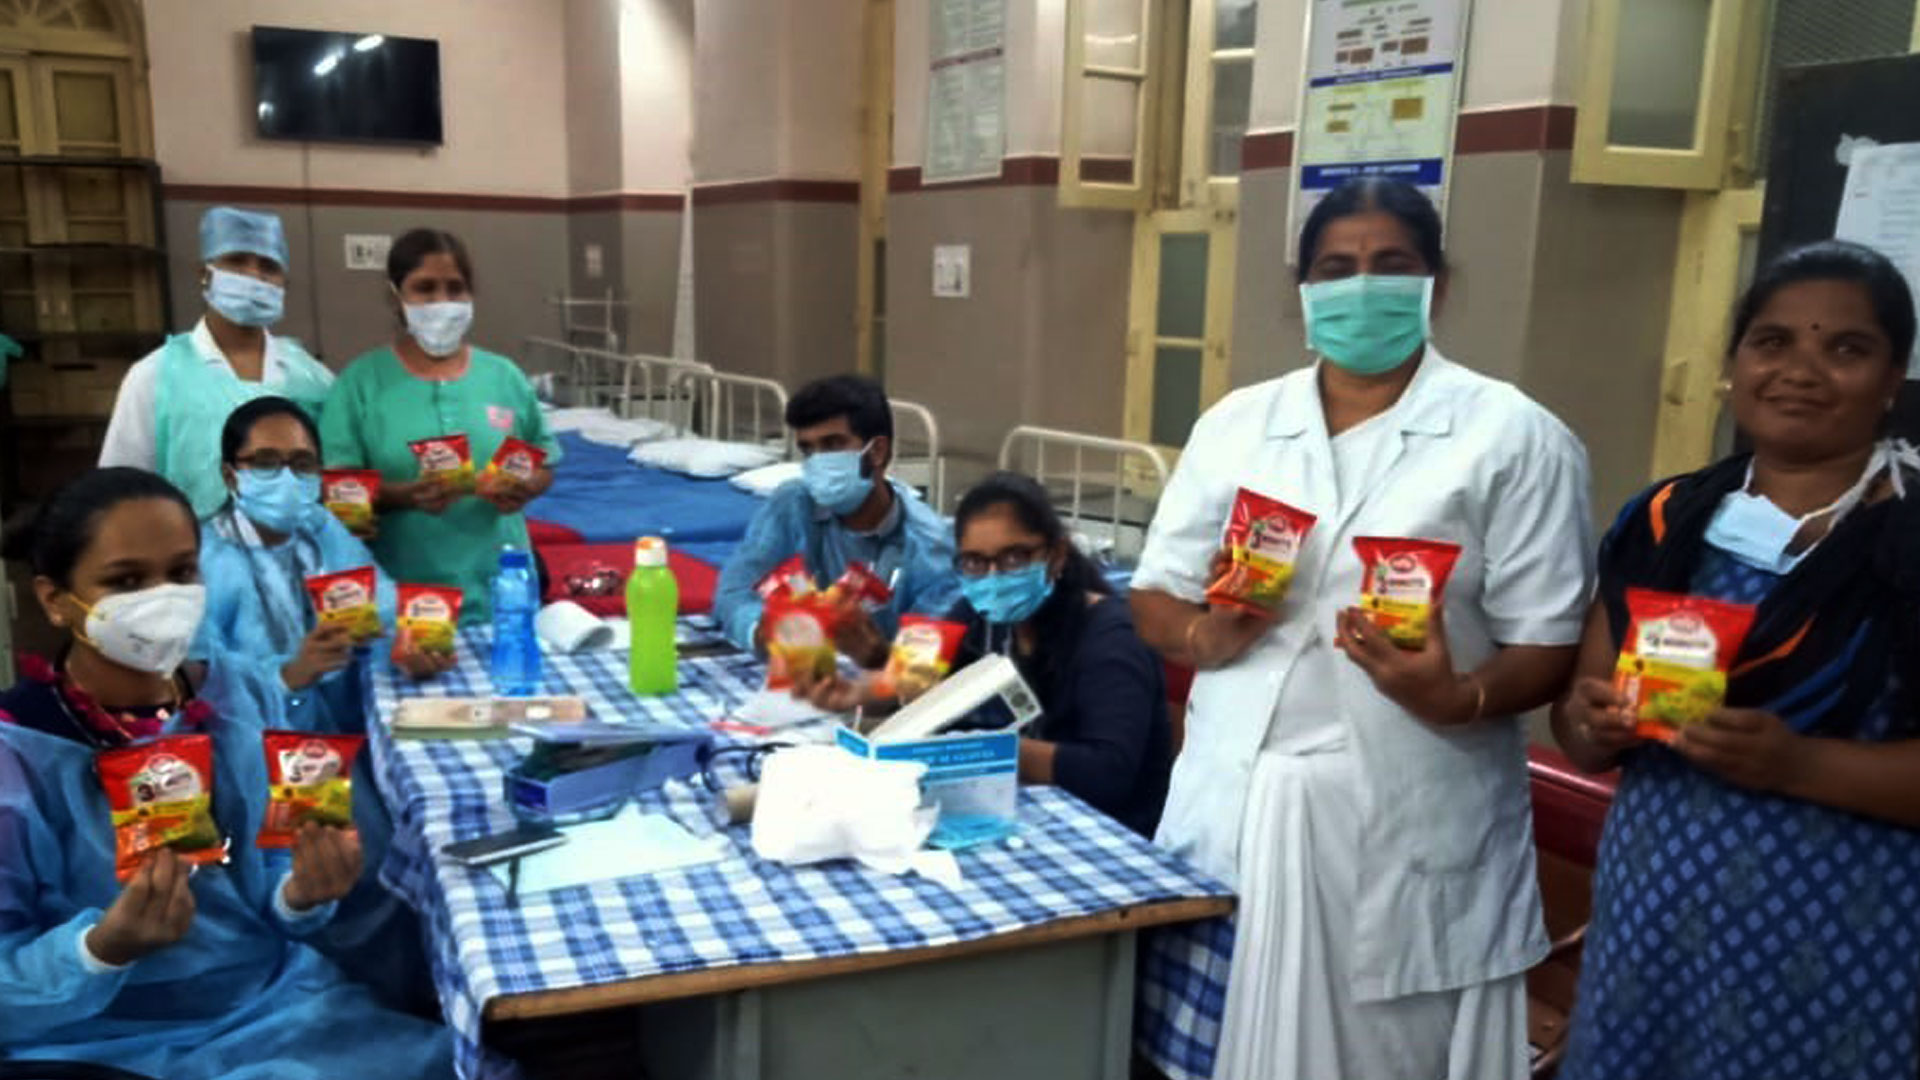 MTR FOODS EXTENDS SUPPORT TO HEALTHCARE PROFESSIONALS.